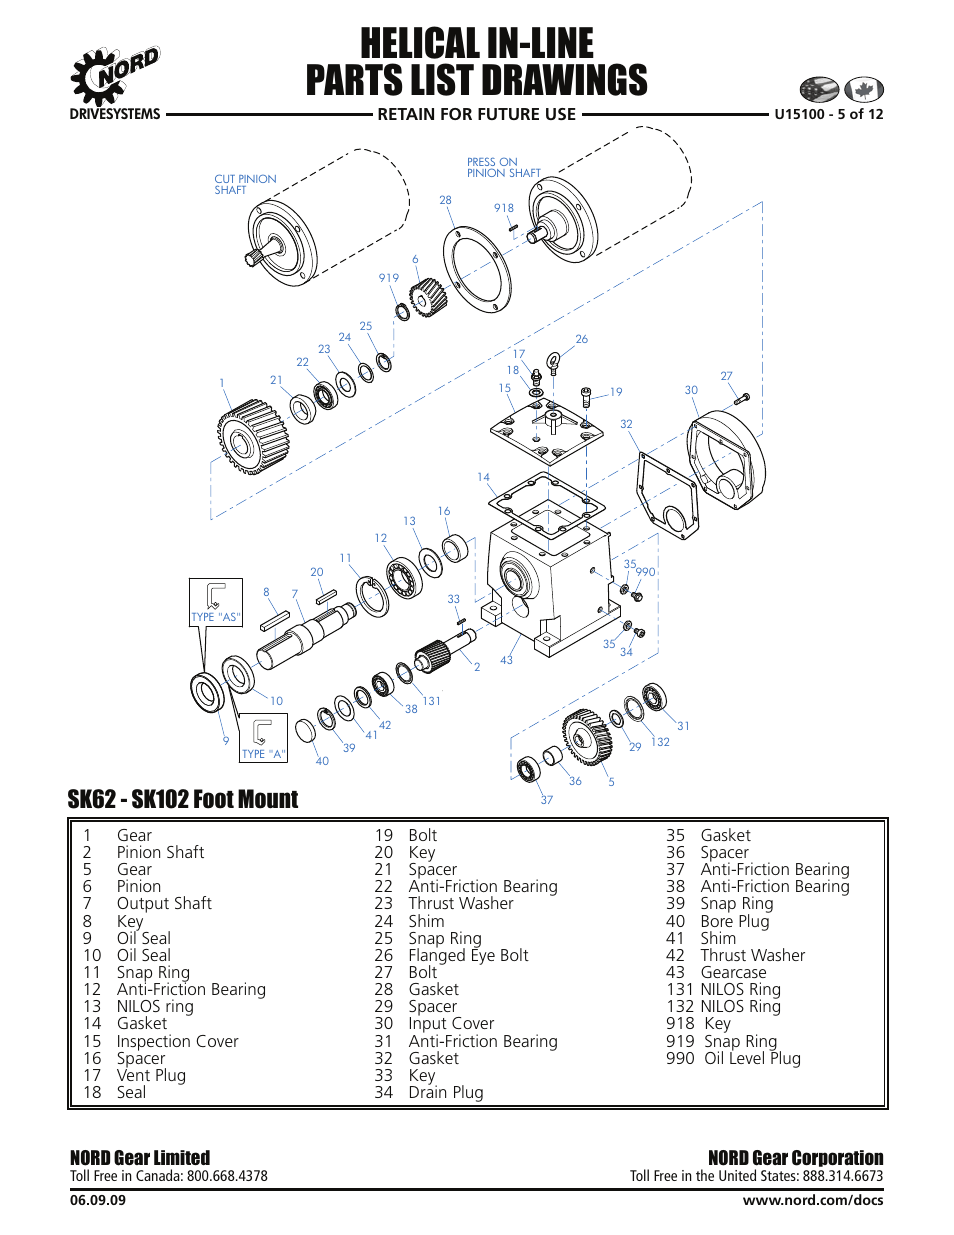 hight resolution of helical in line parts list drawings nord gear corporation nord gear limited viking pump nord tsm for helical inline reducers user manual page 22 29